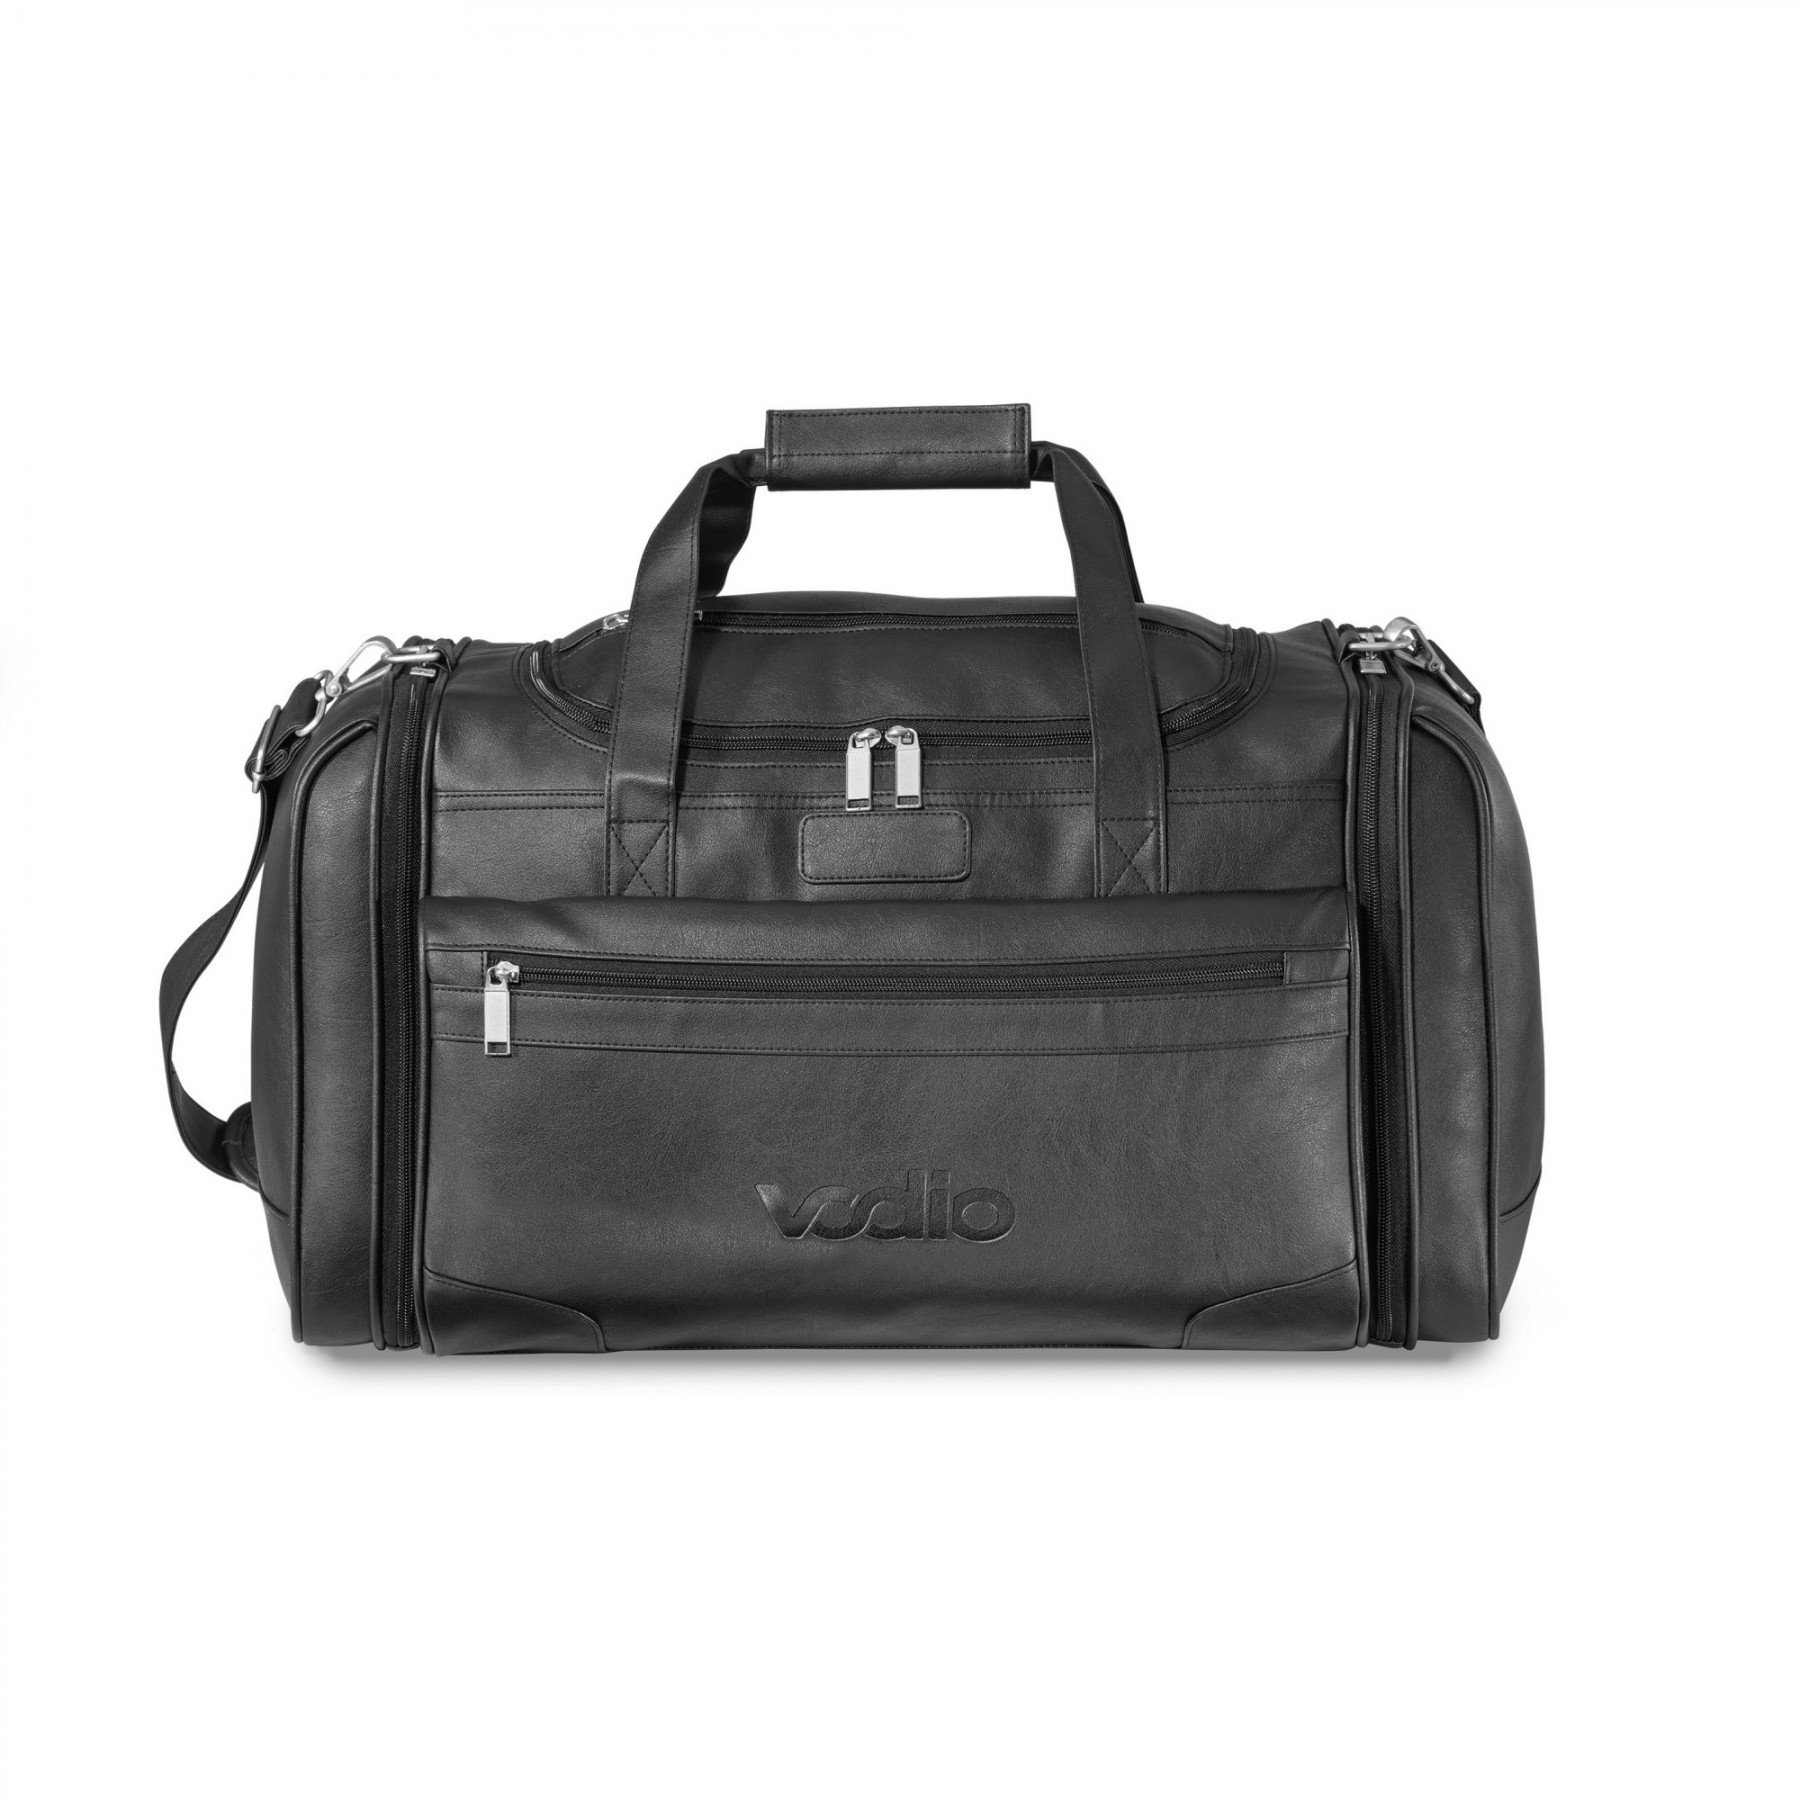 Large Executive Travel Bag II